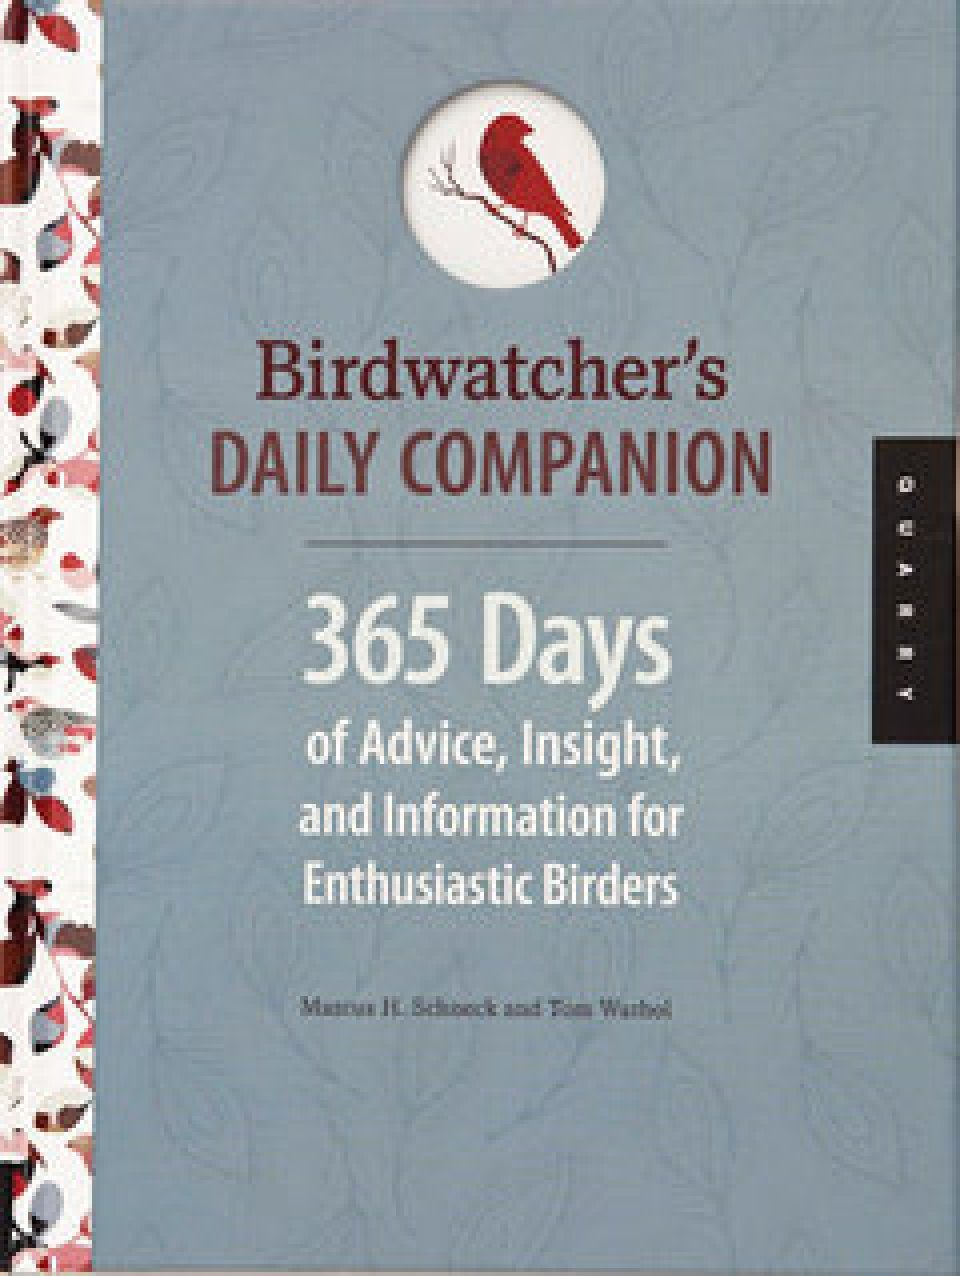 Bird Watcher's Daily Companion